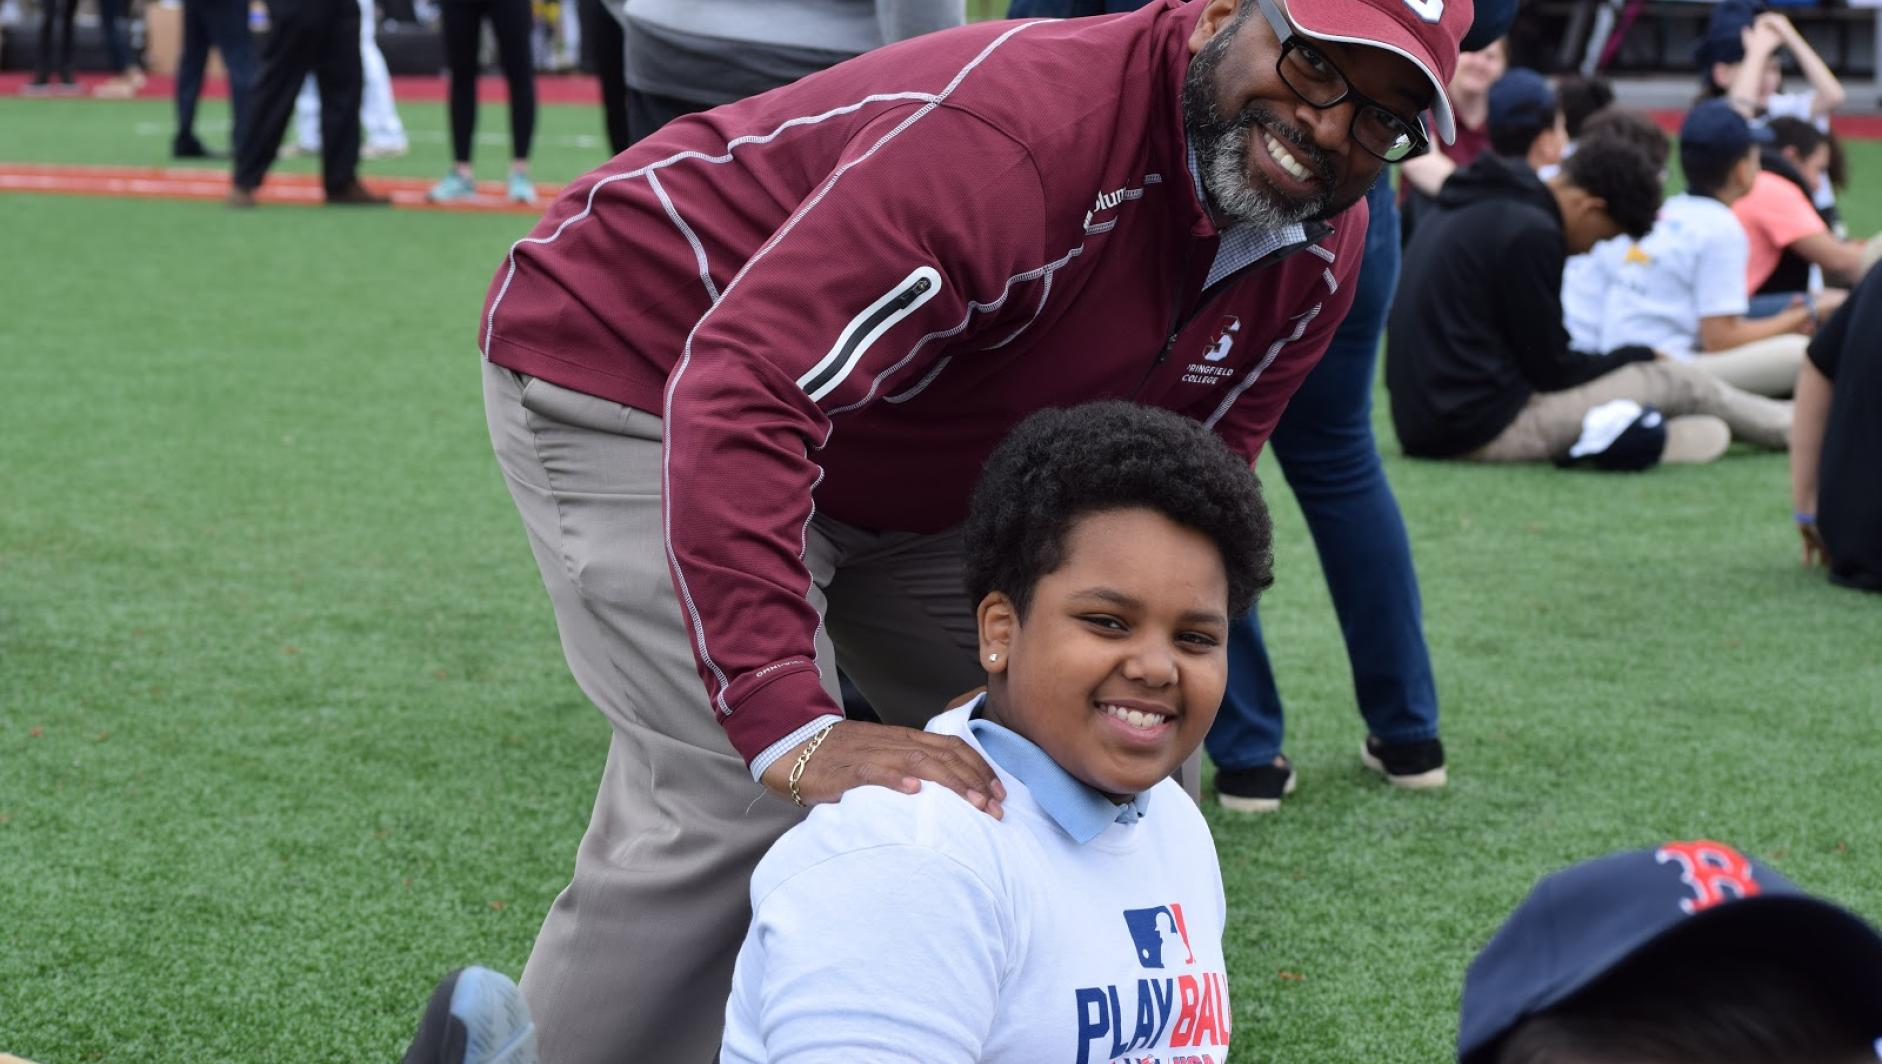 Calvin Hill poses with a participant during Play Ball event.